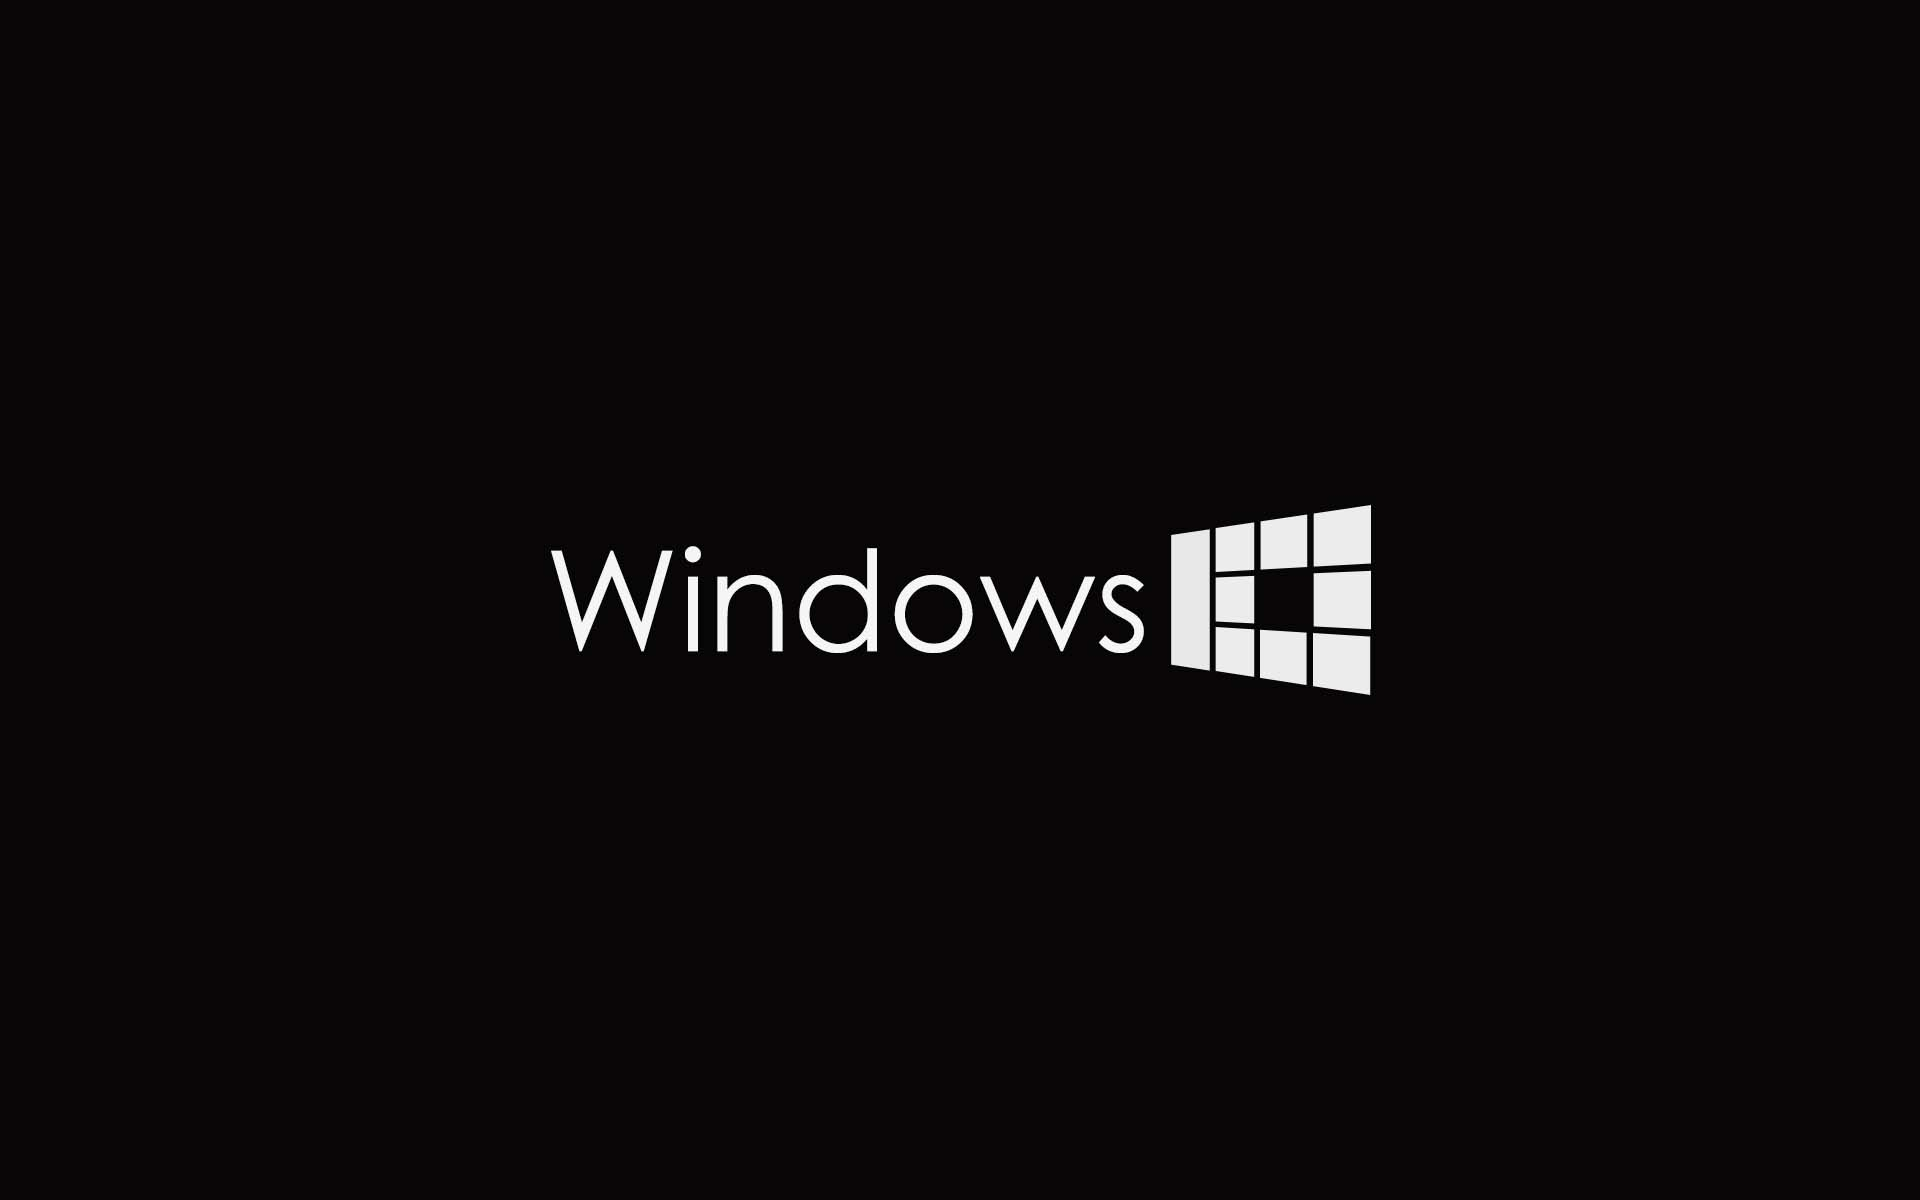 Basic windows 10 wallpaper